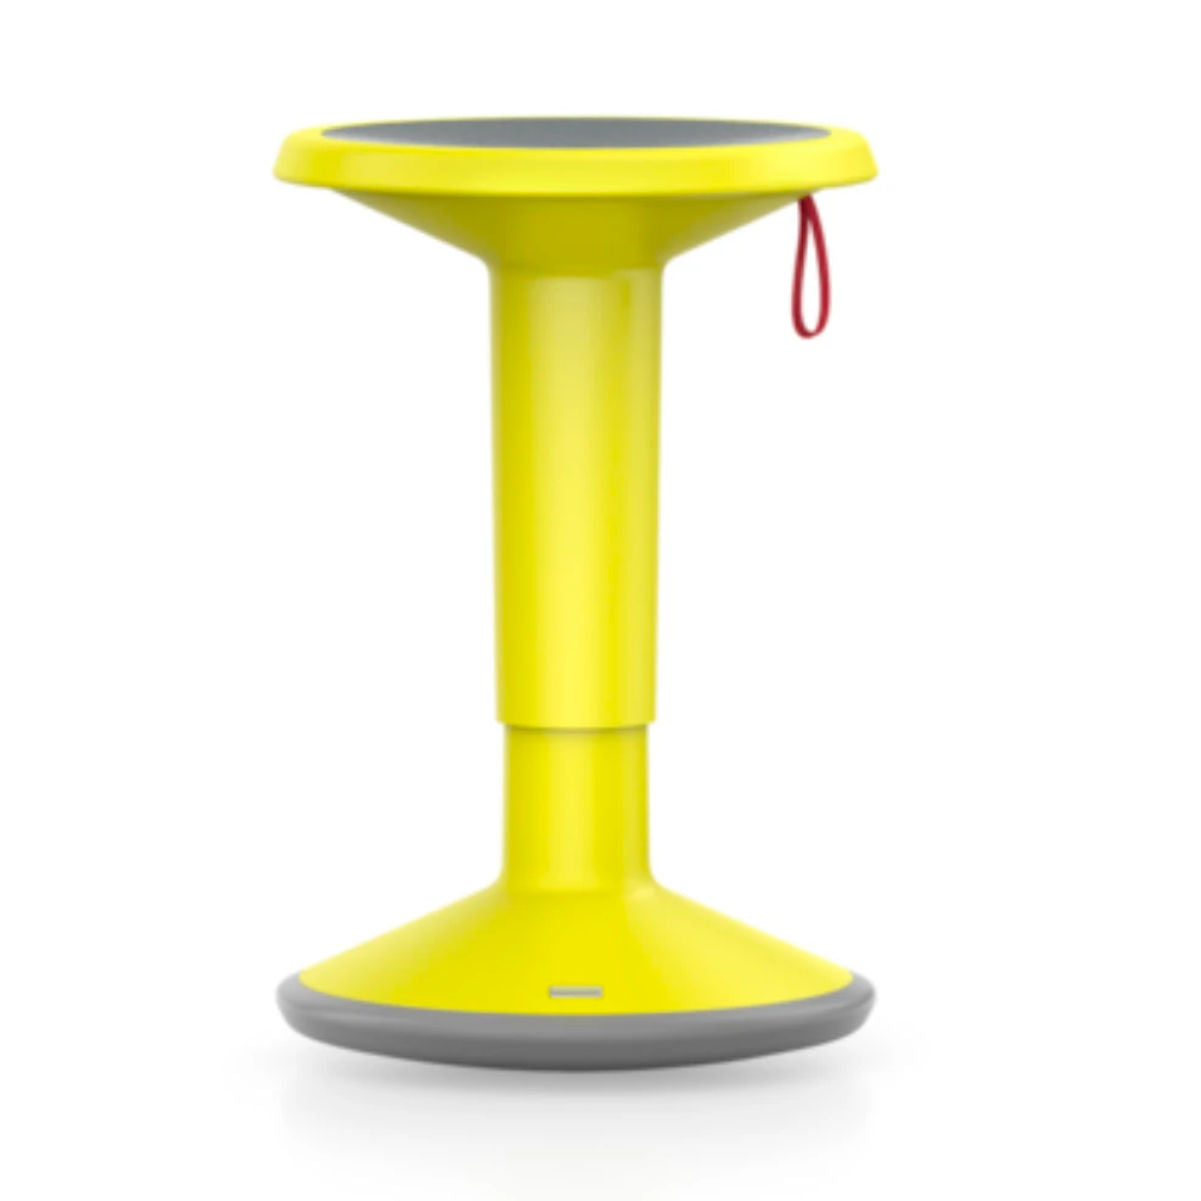 Interstuhl Upis1 ergonomic stool, passion yellow